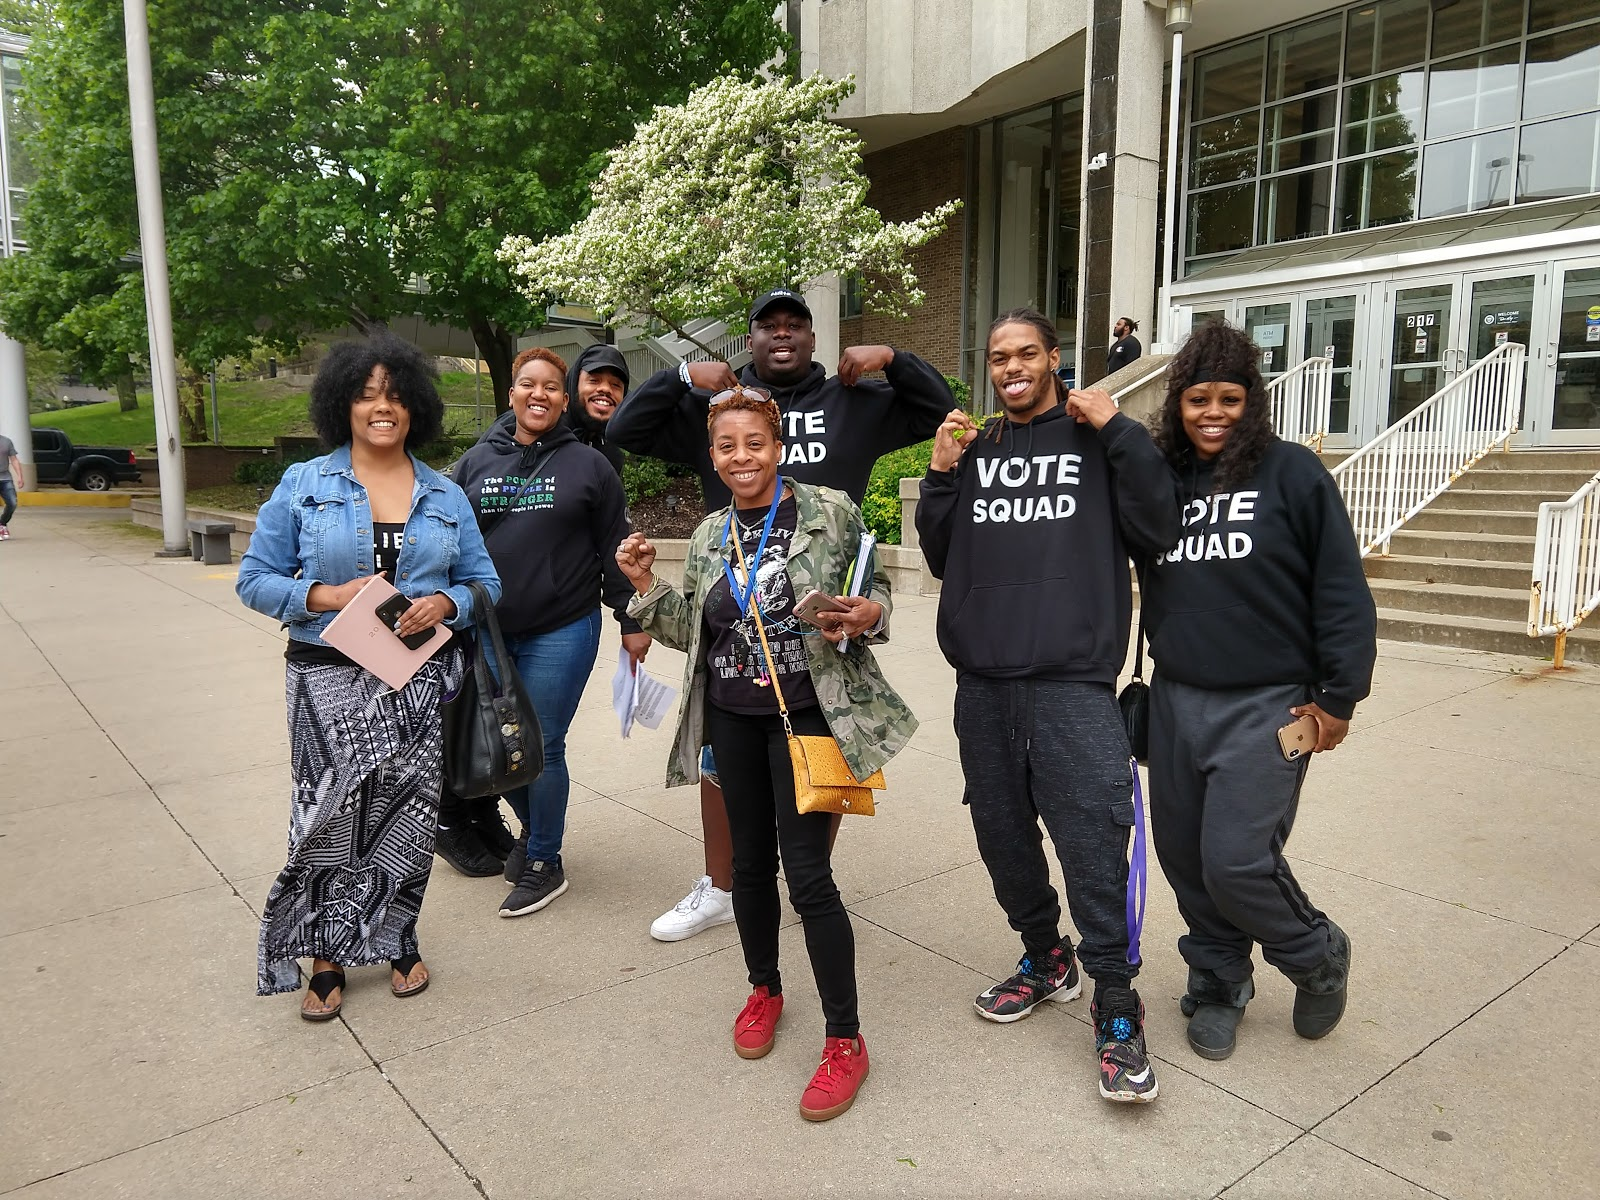 Image from the Black Mother's Day Bailout event in Akron